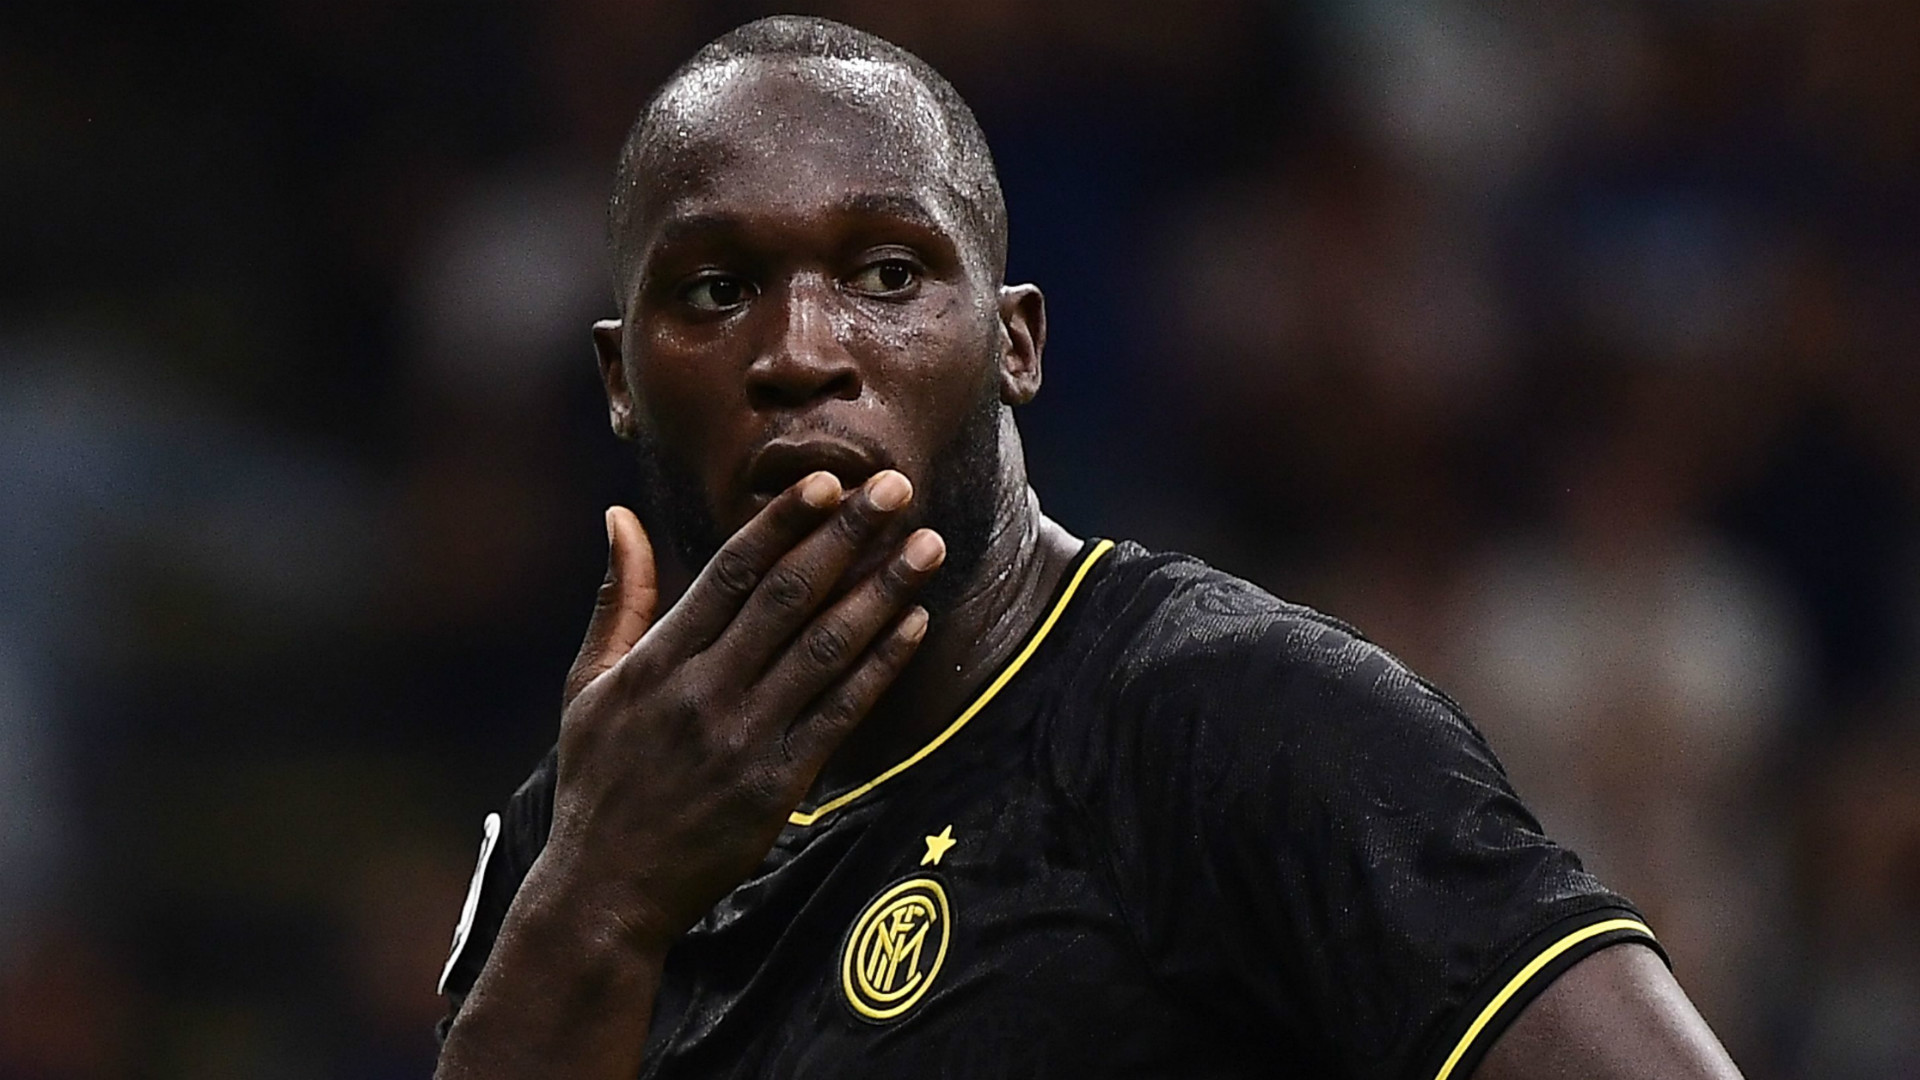 Man Utd made a mistake selling Lukaku without having replacement - Scholes